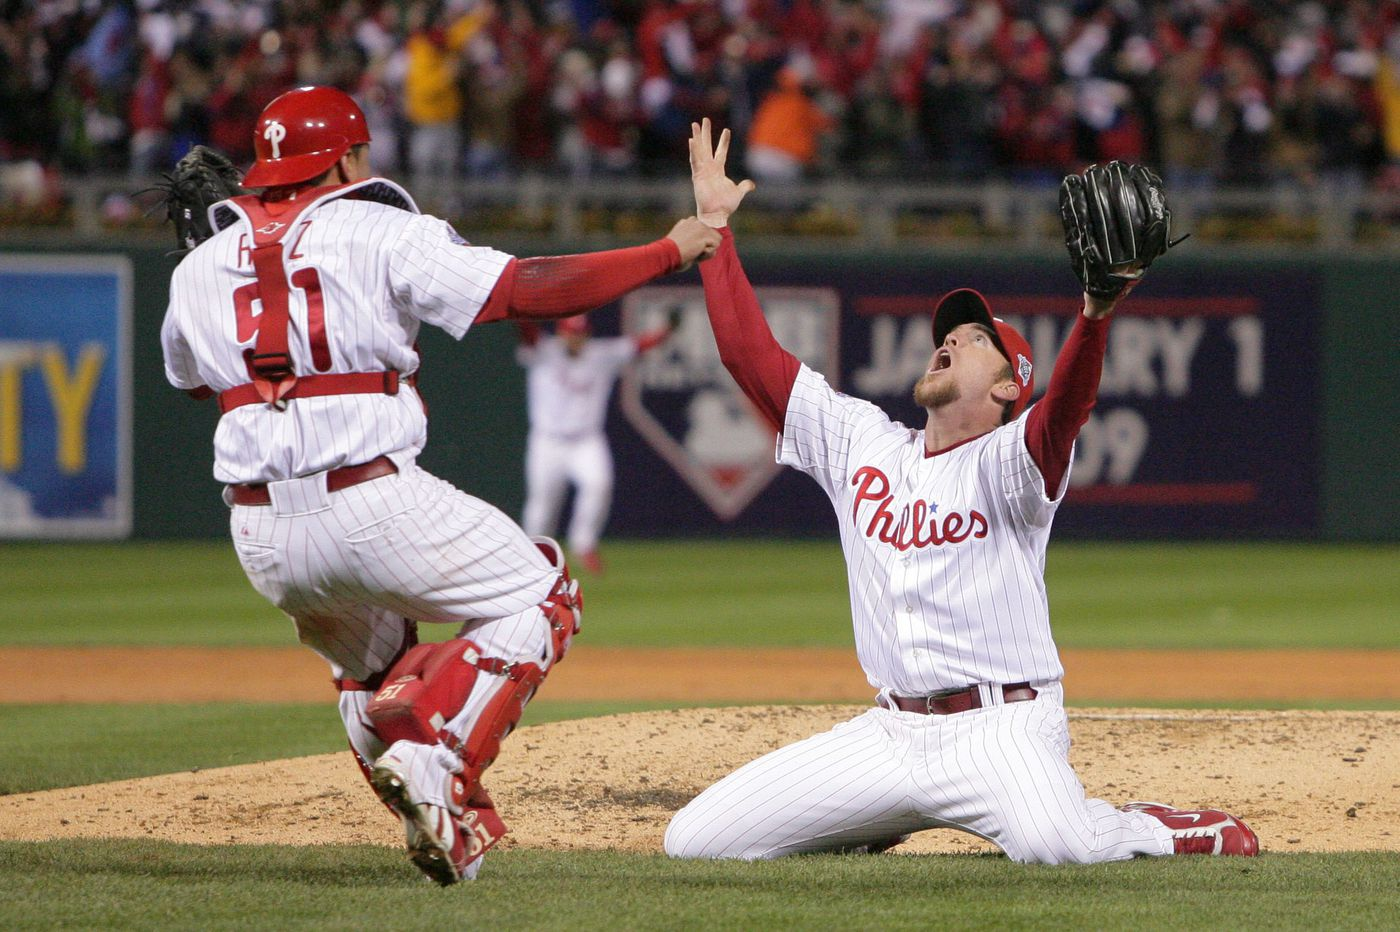 Looking back: 10 years ago today, the Phillies won the World Series